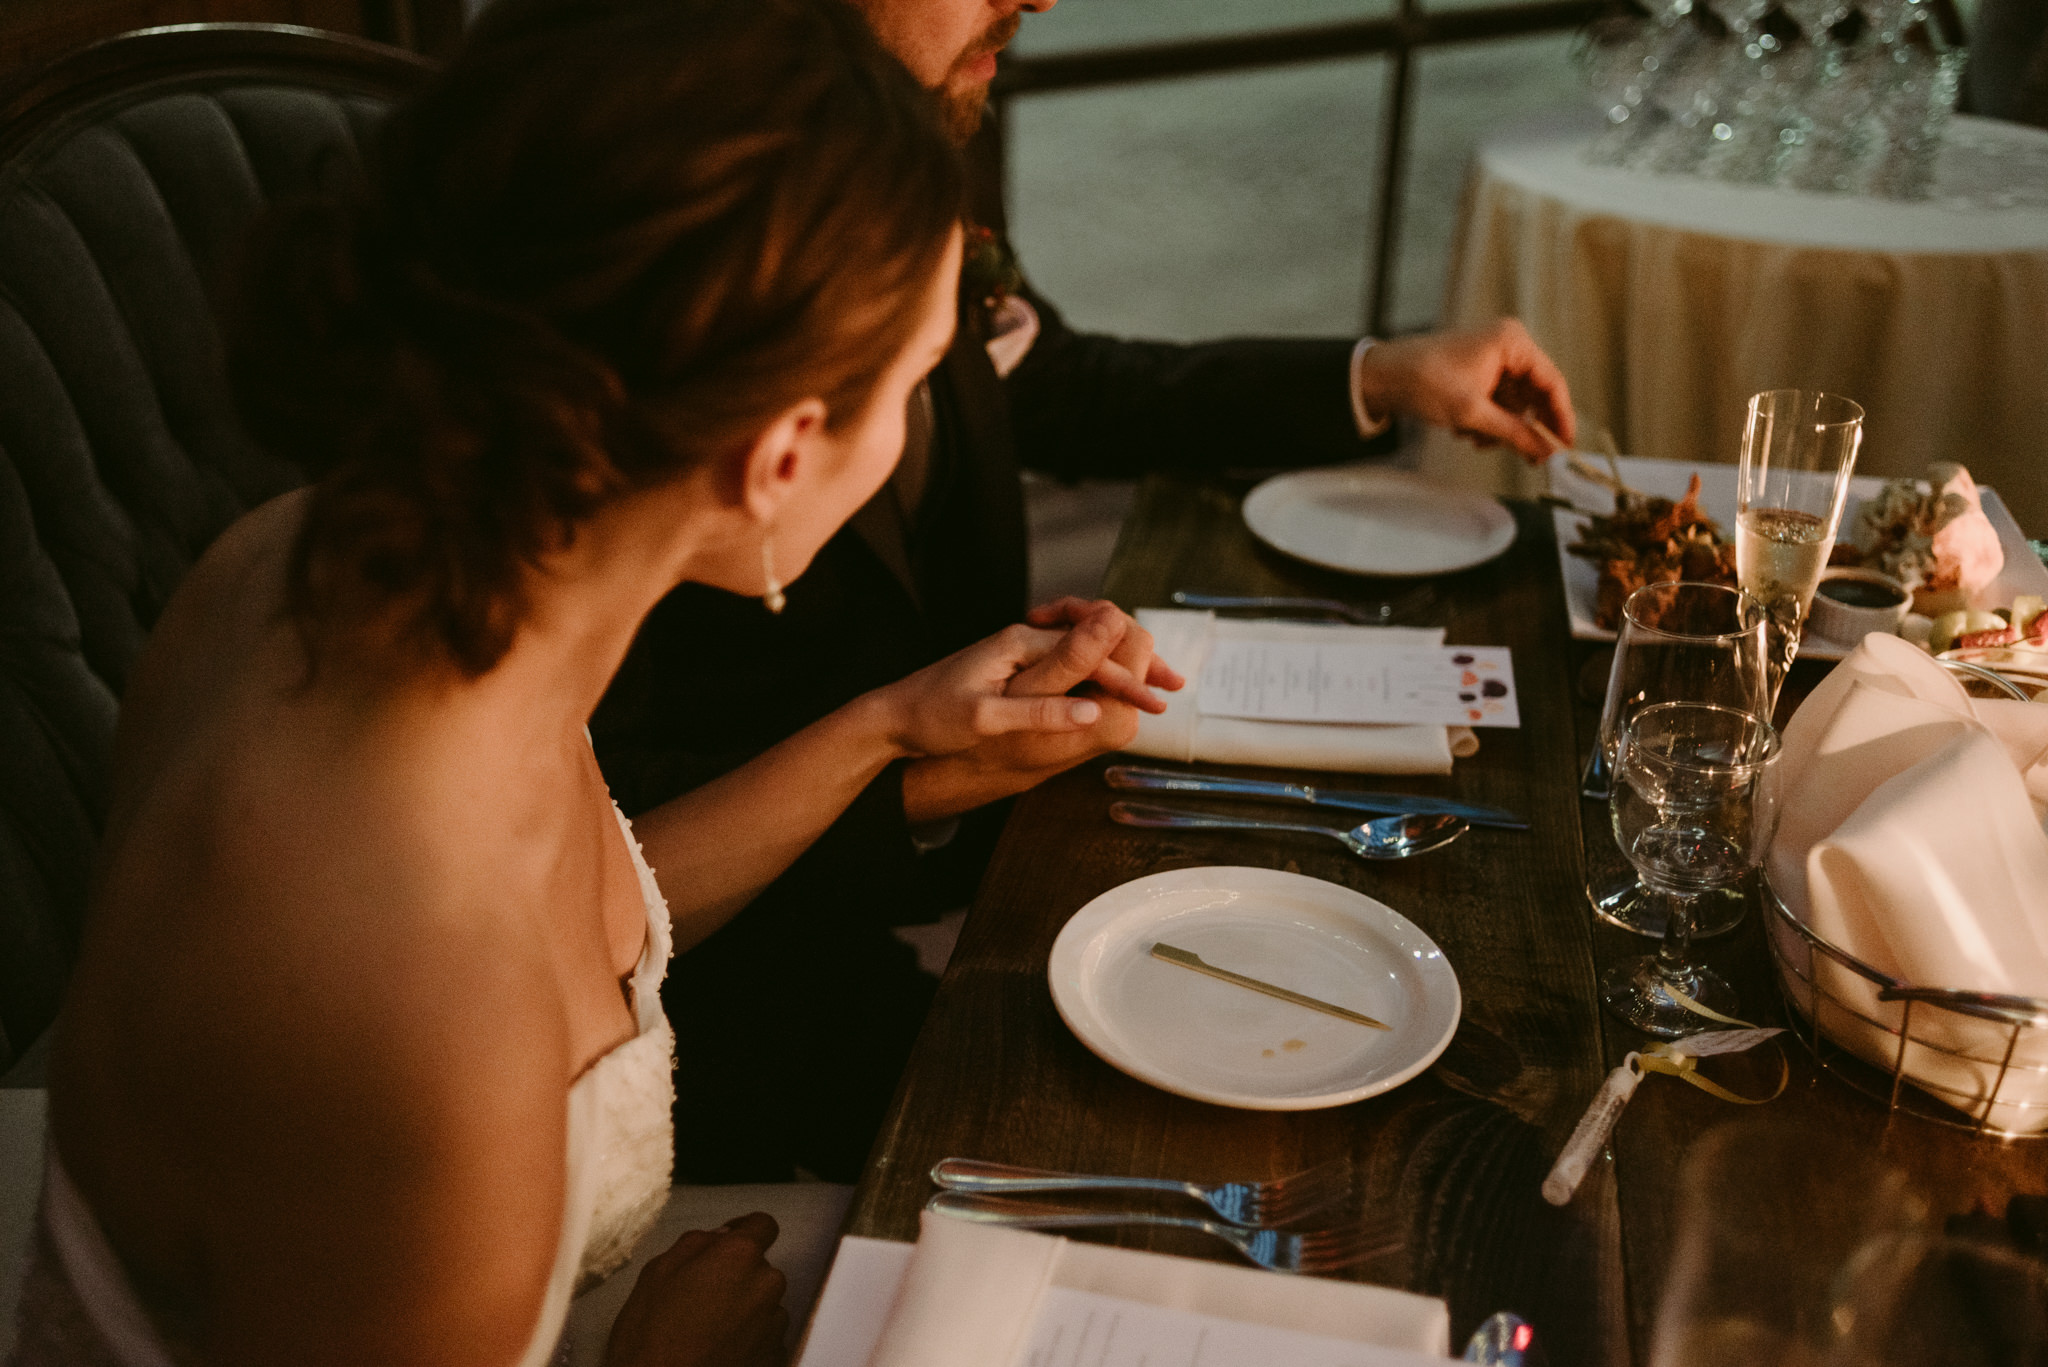 bride and groom holding hands at table during wedding reception